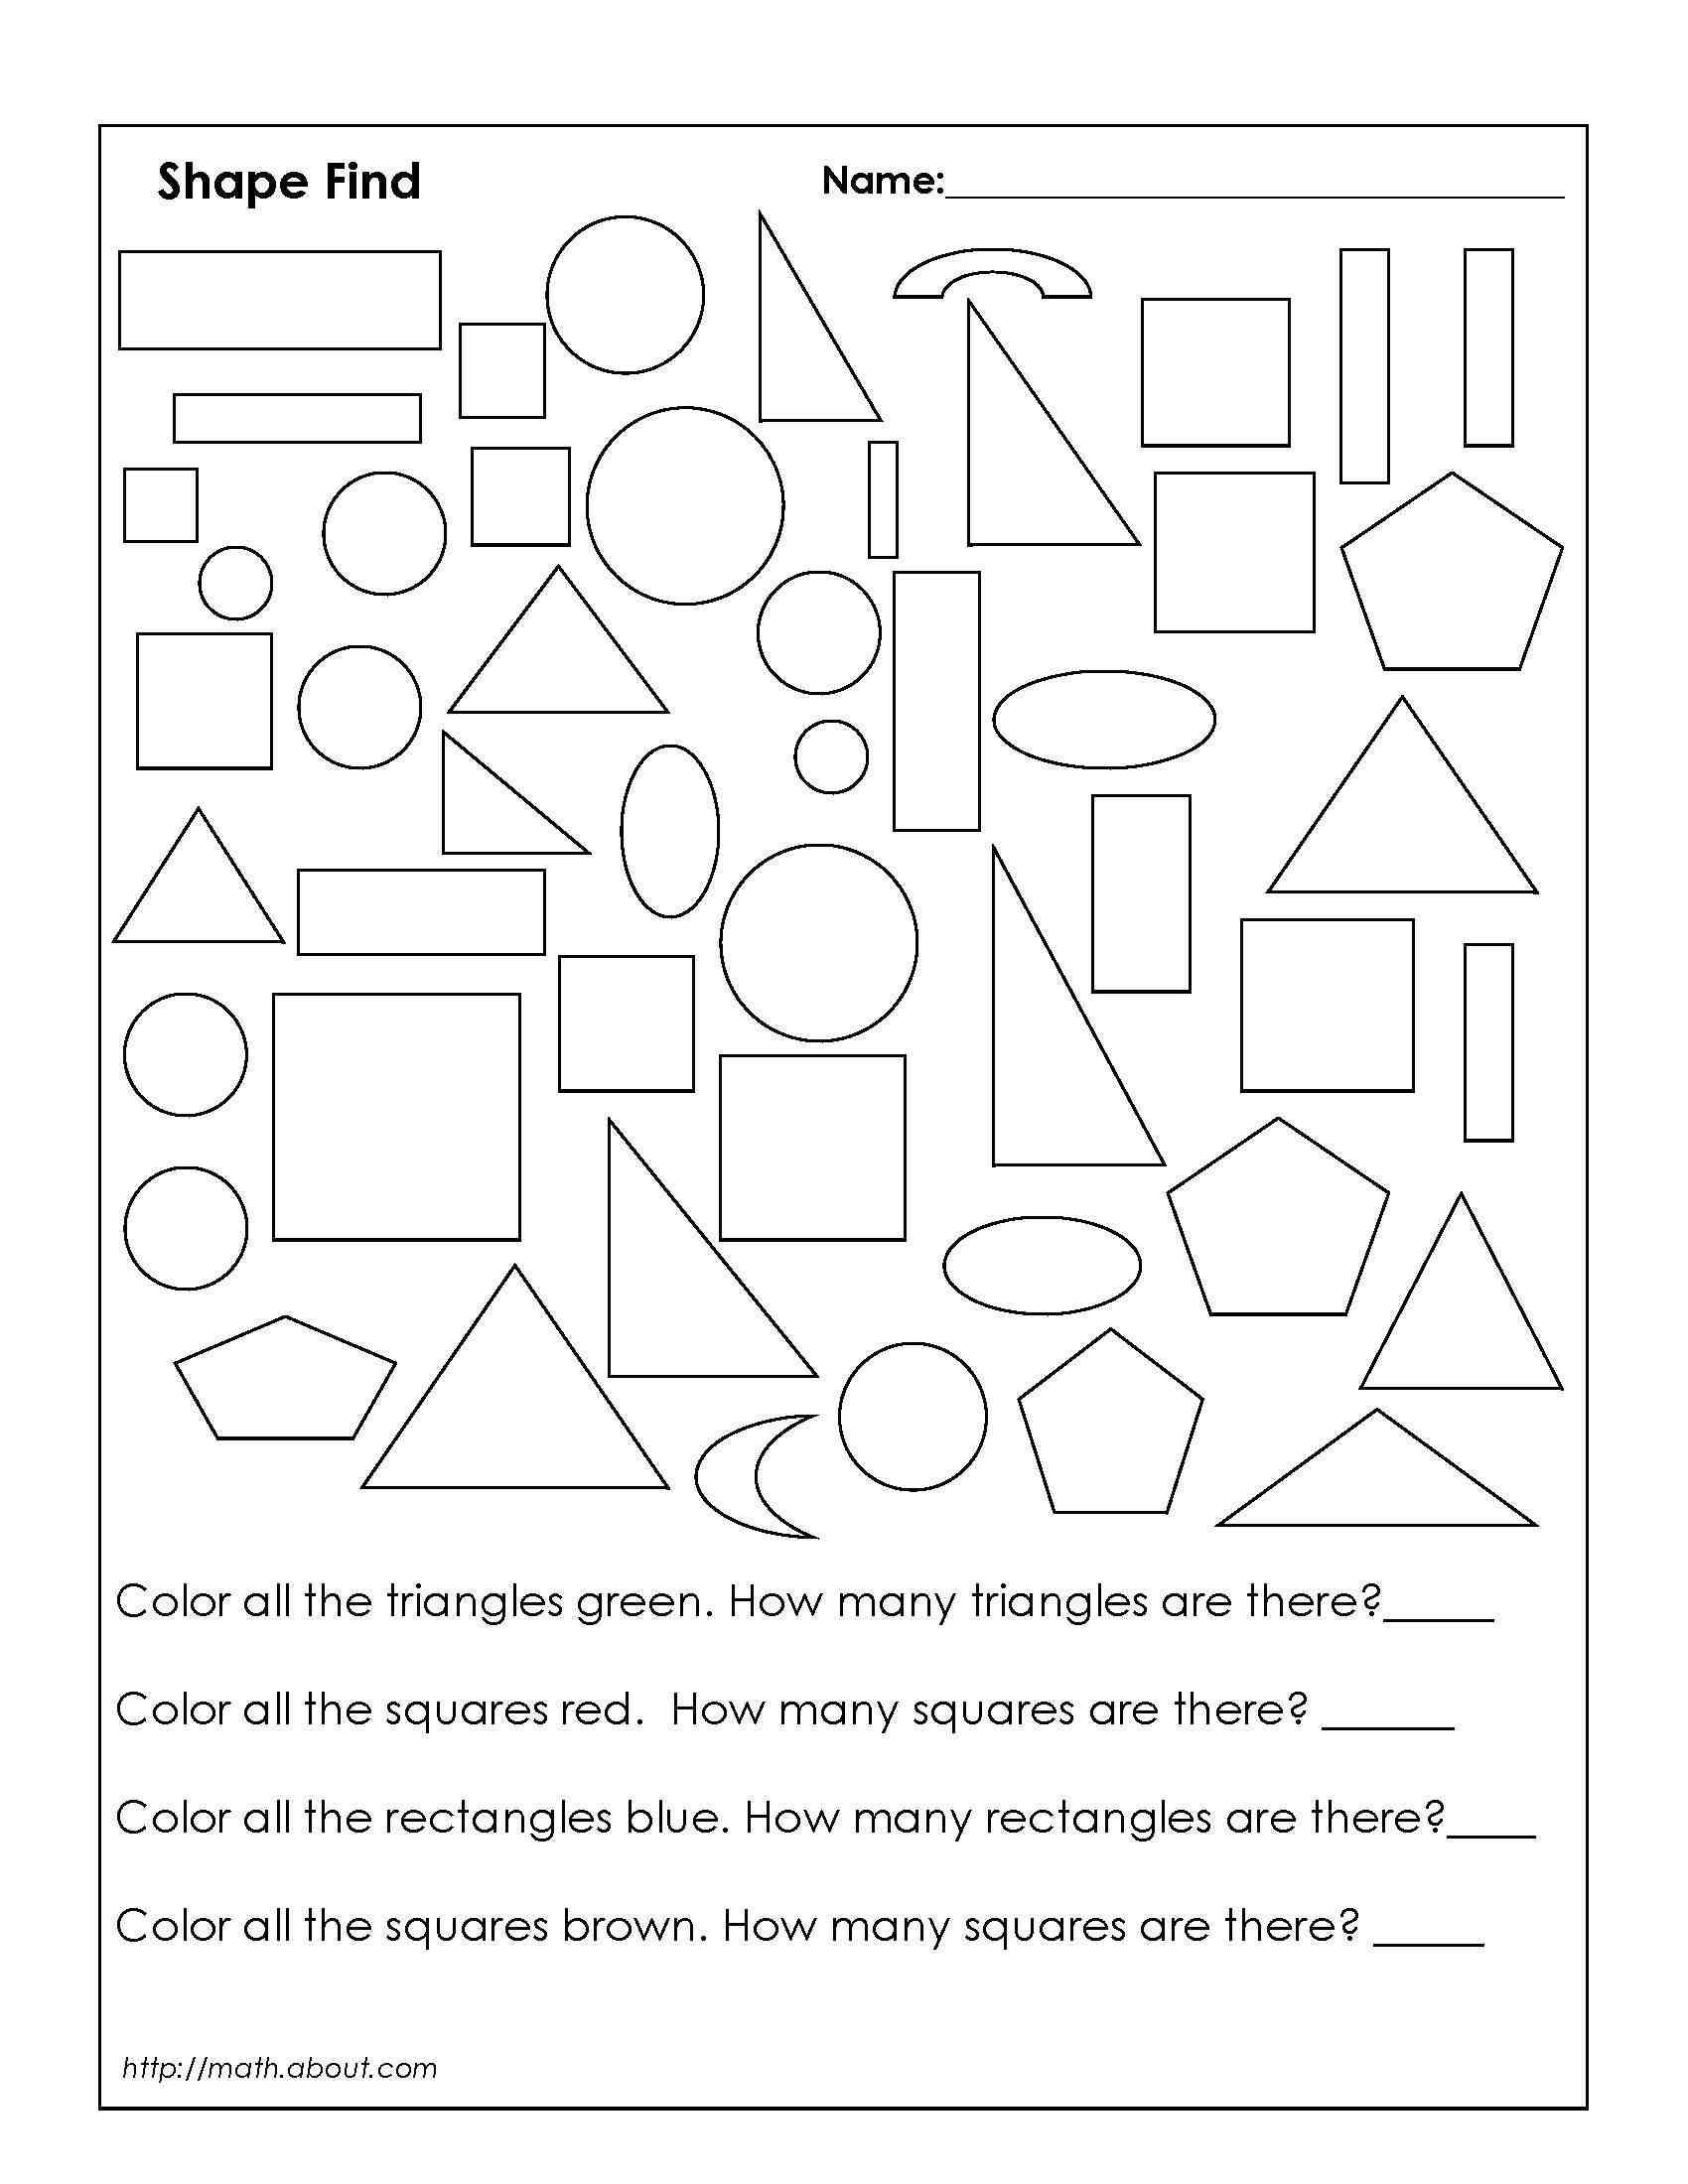 Worksheet Ideas Image By Eva In